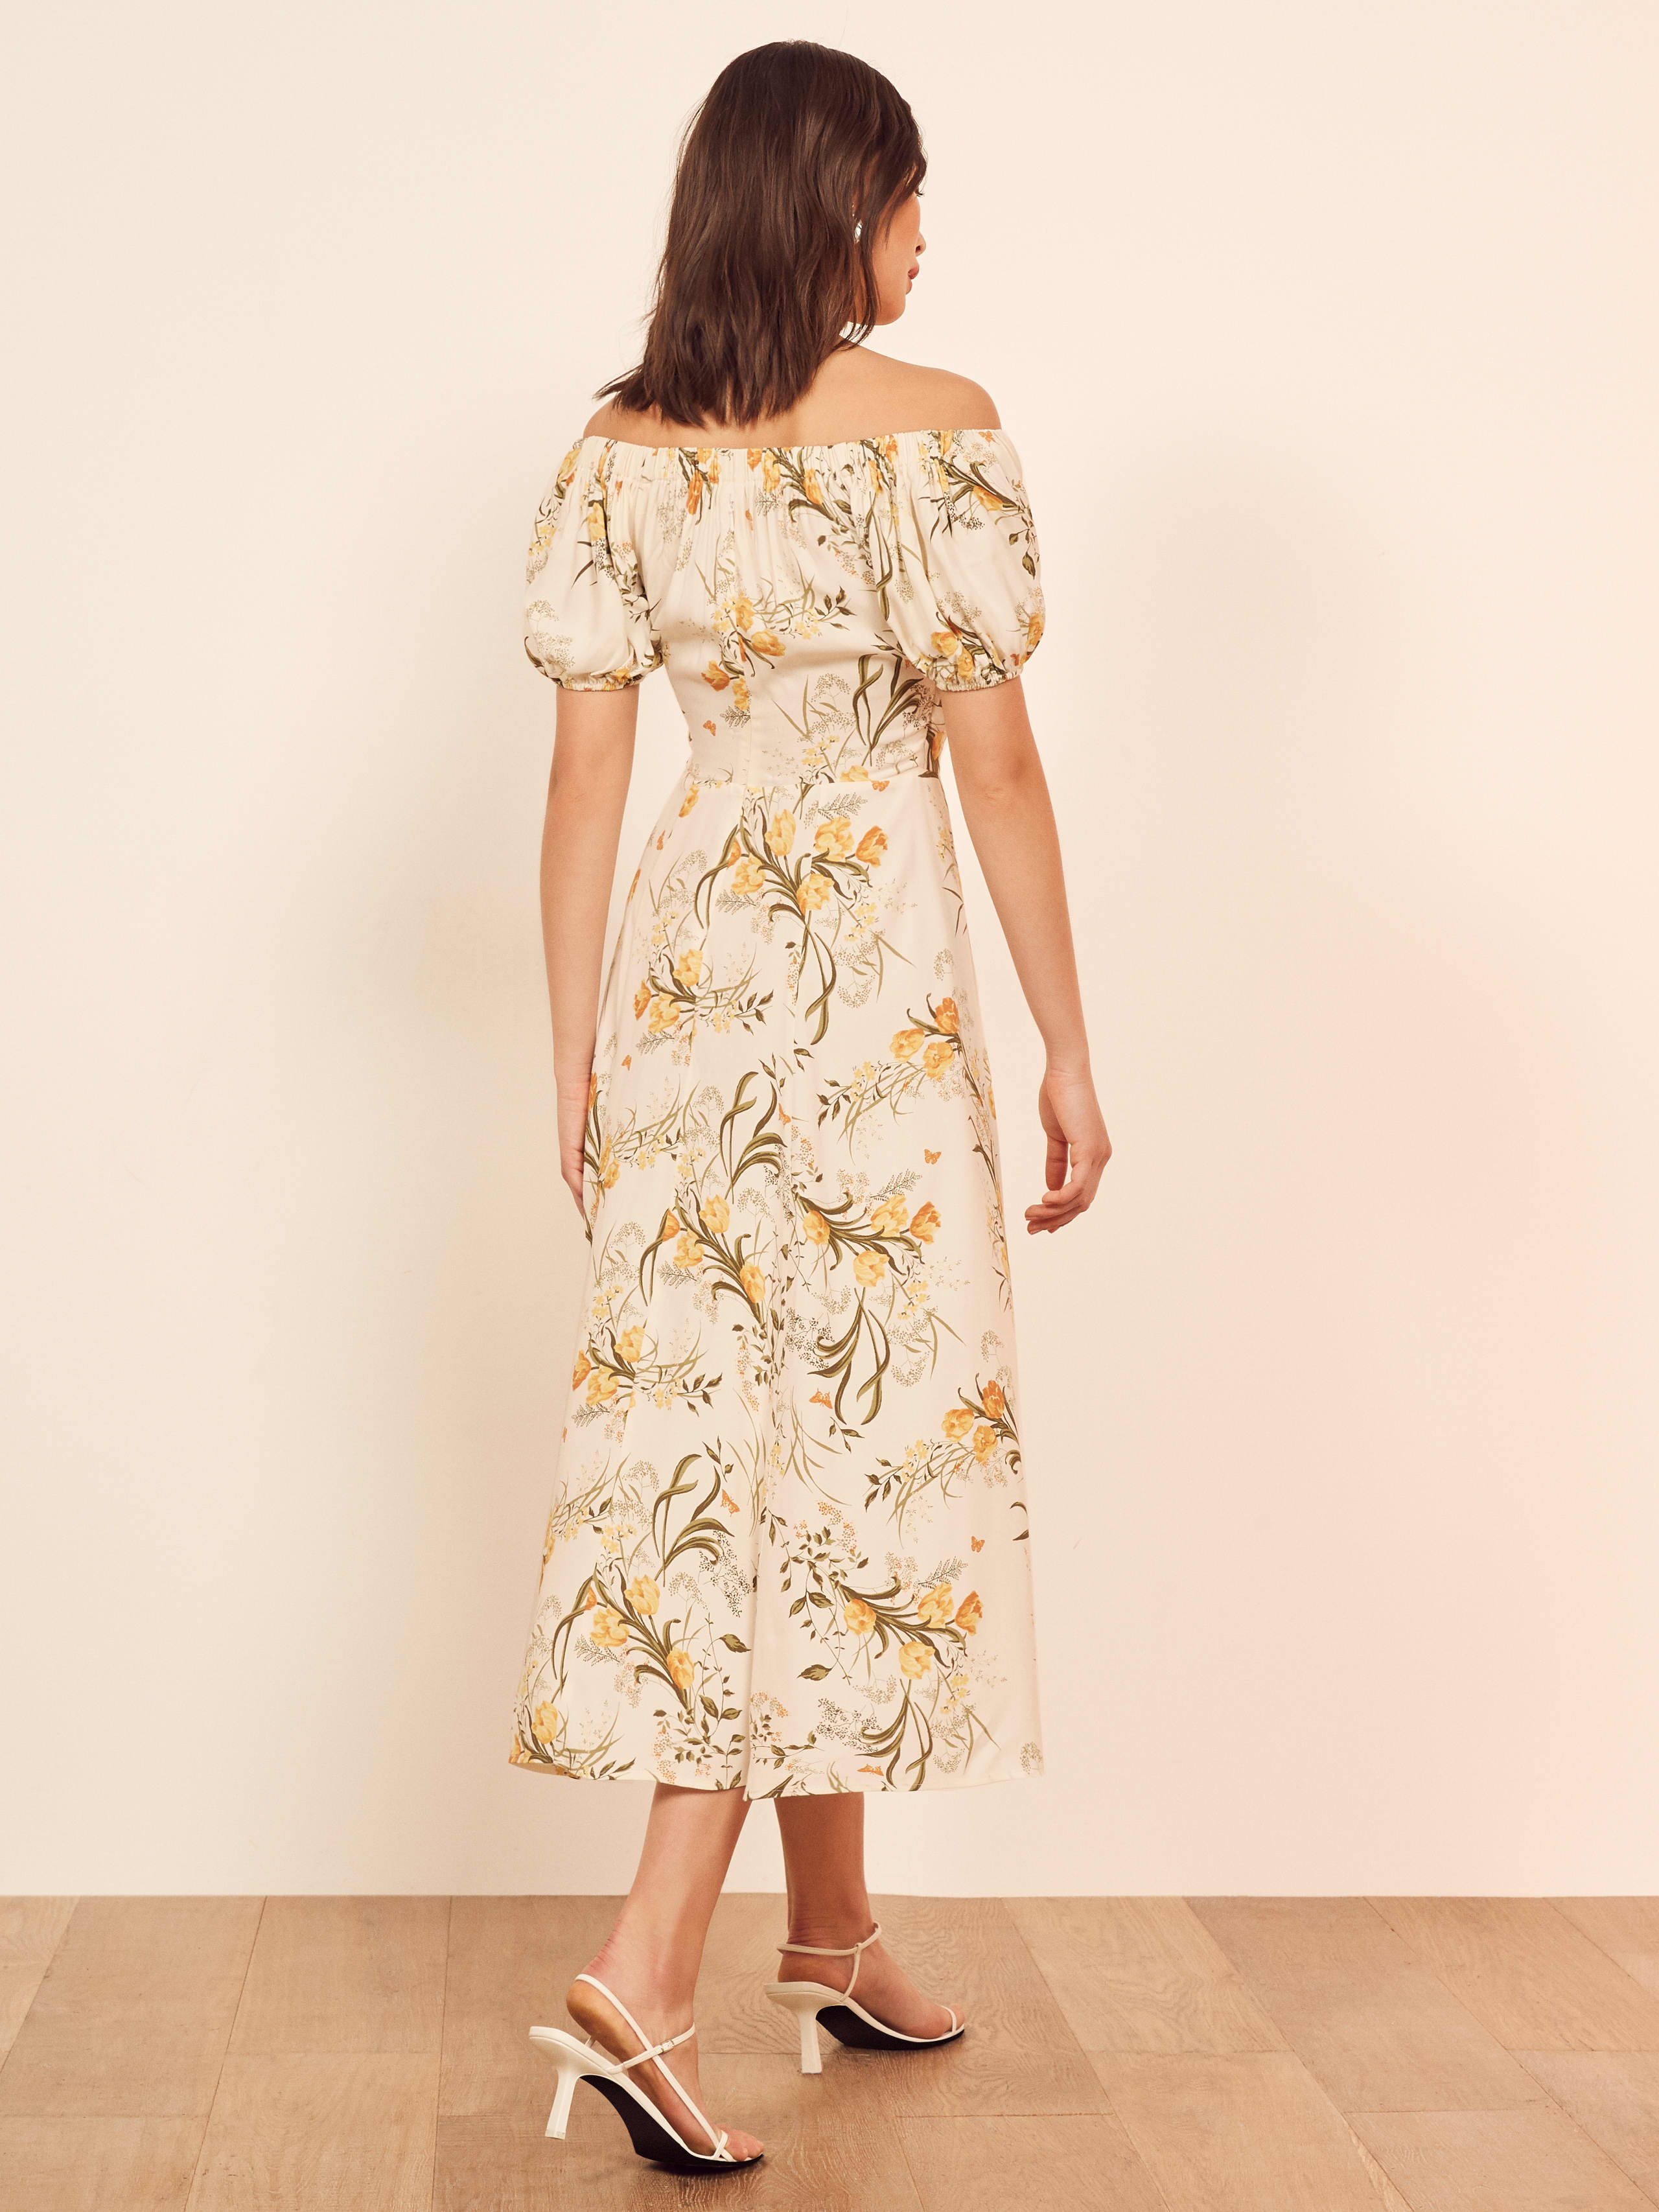 Pearl Dress Reformation